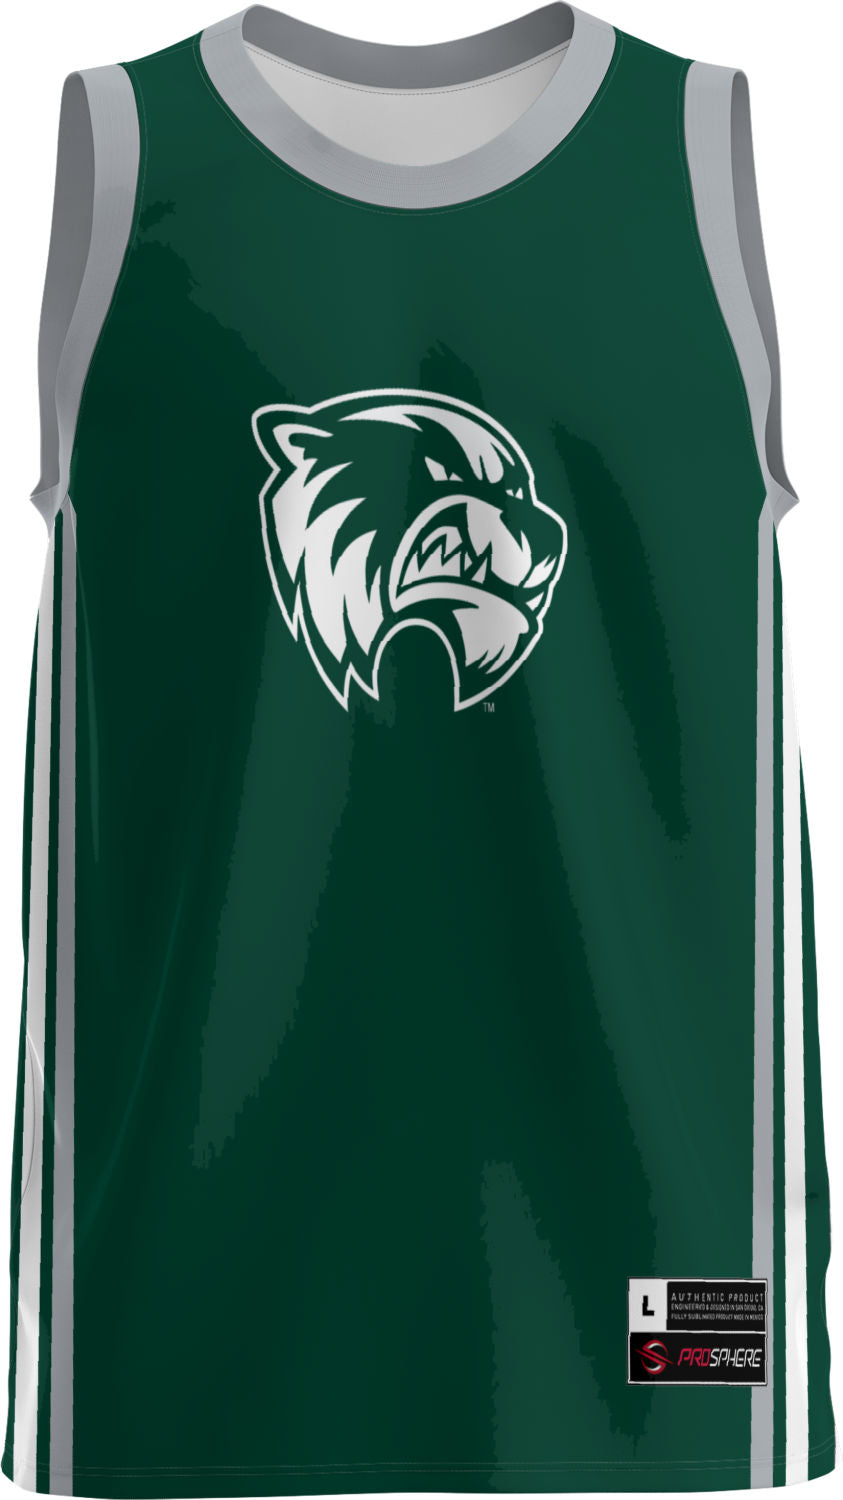 Utah Valley University: Adult Replica Basketball Fan Jersey - Classic